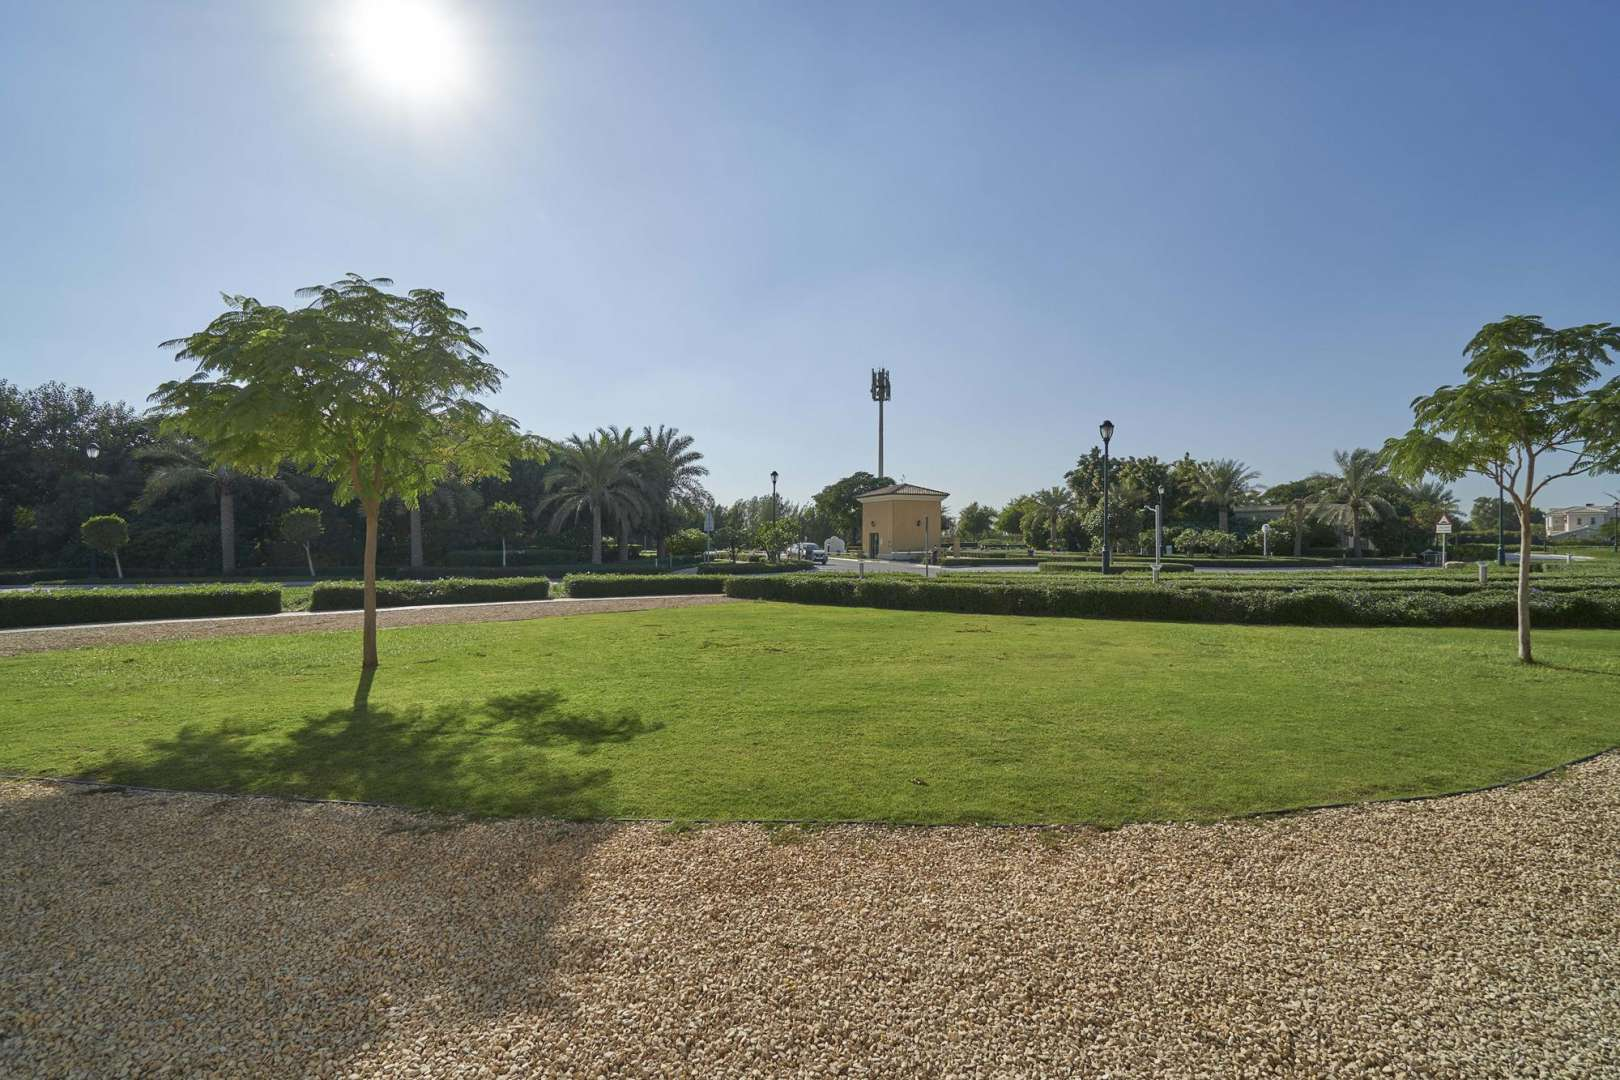 Land Residential For Sale In The Sundials, Earth : Buy Land Residential